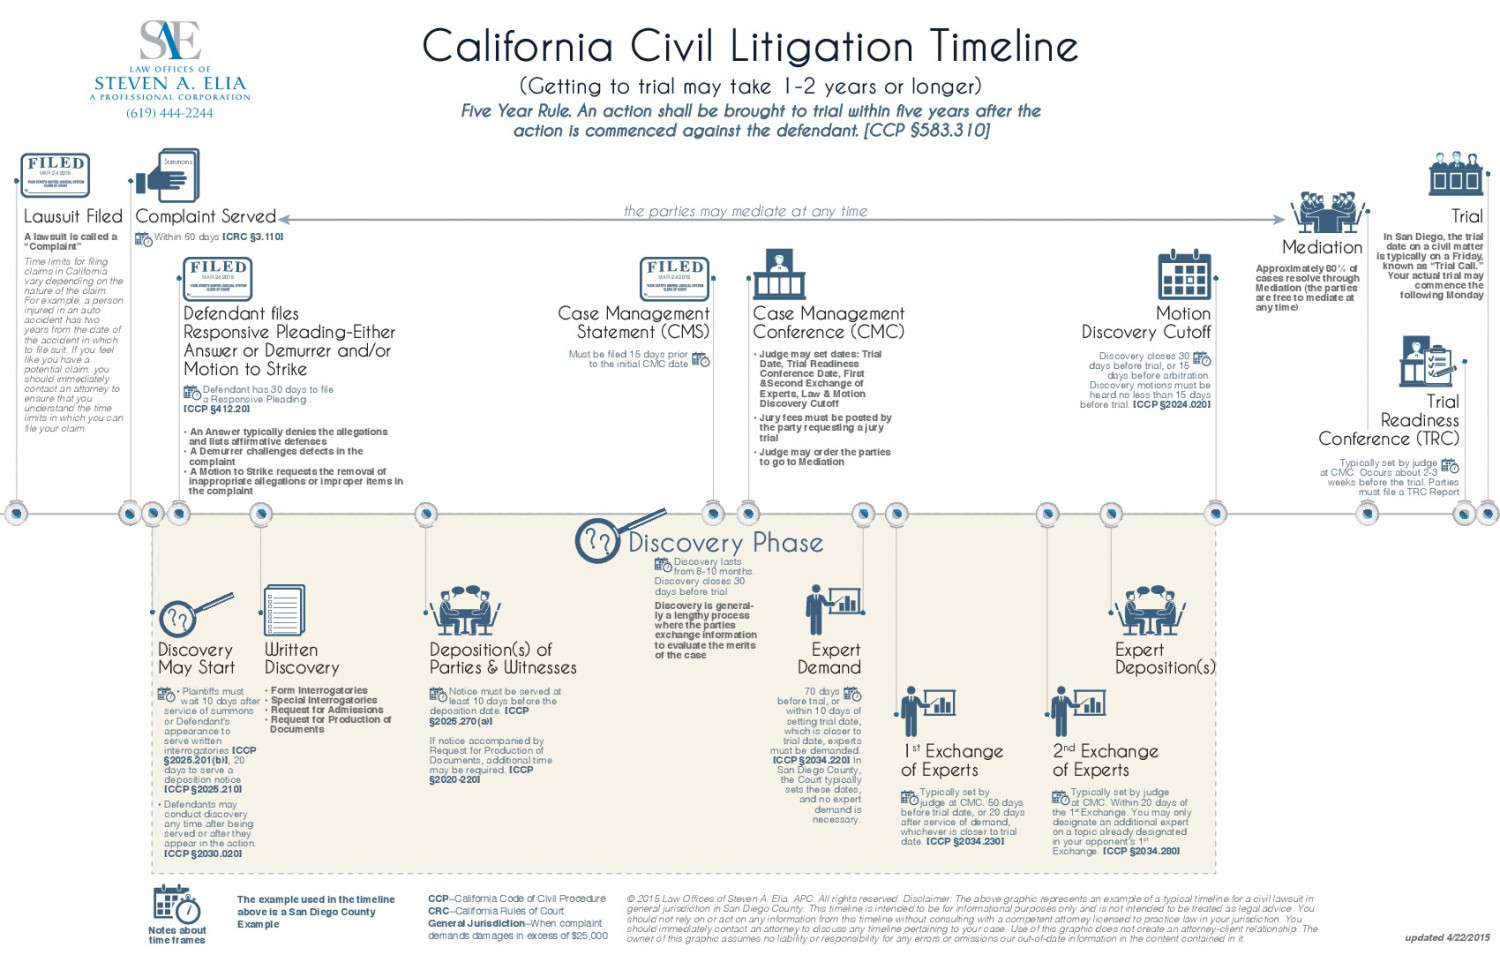 California Civil Litigation Timeline Infographic